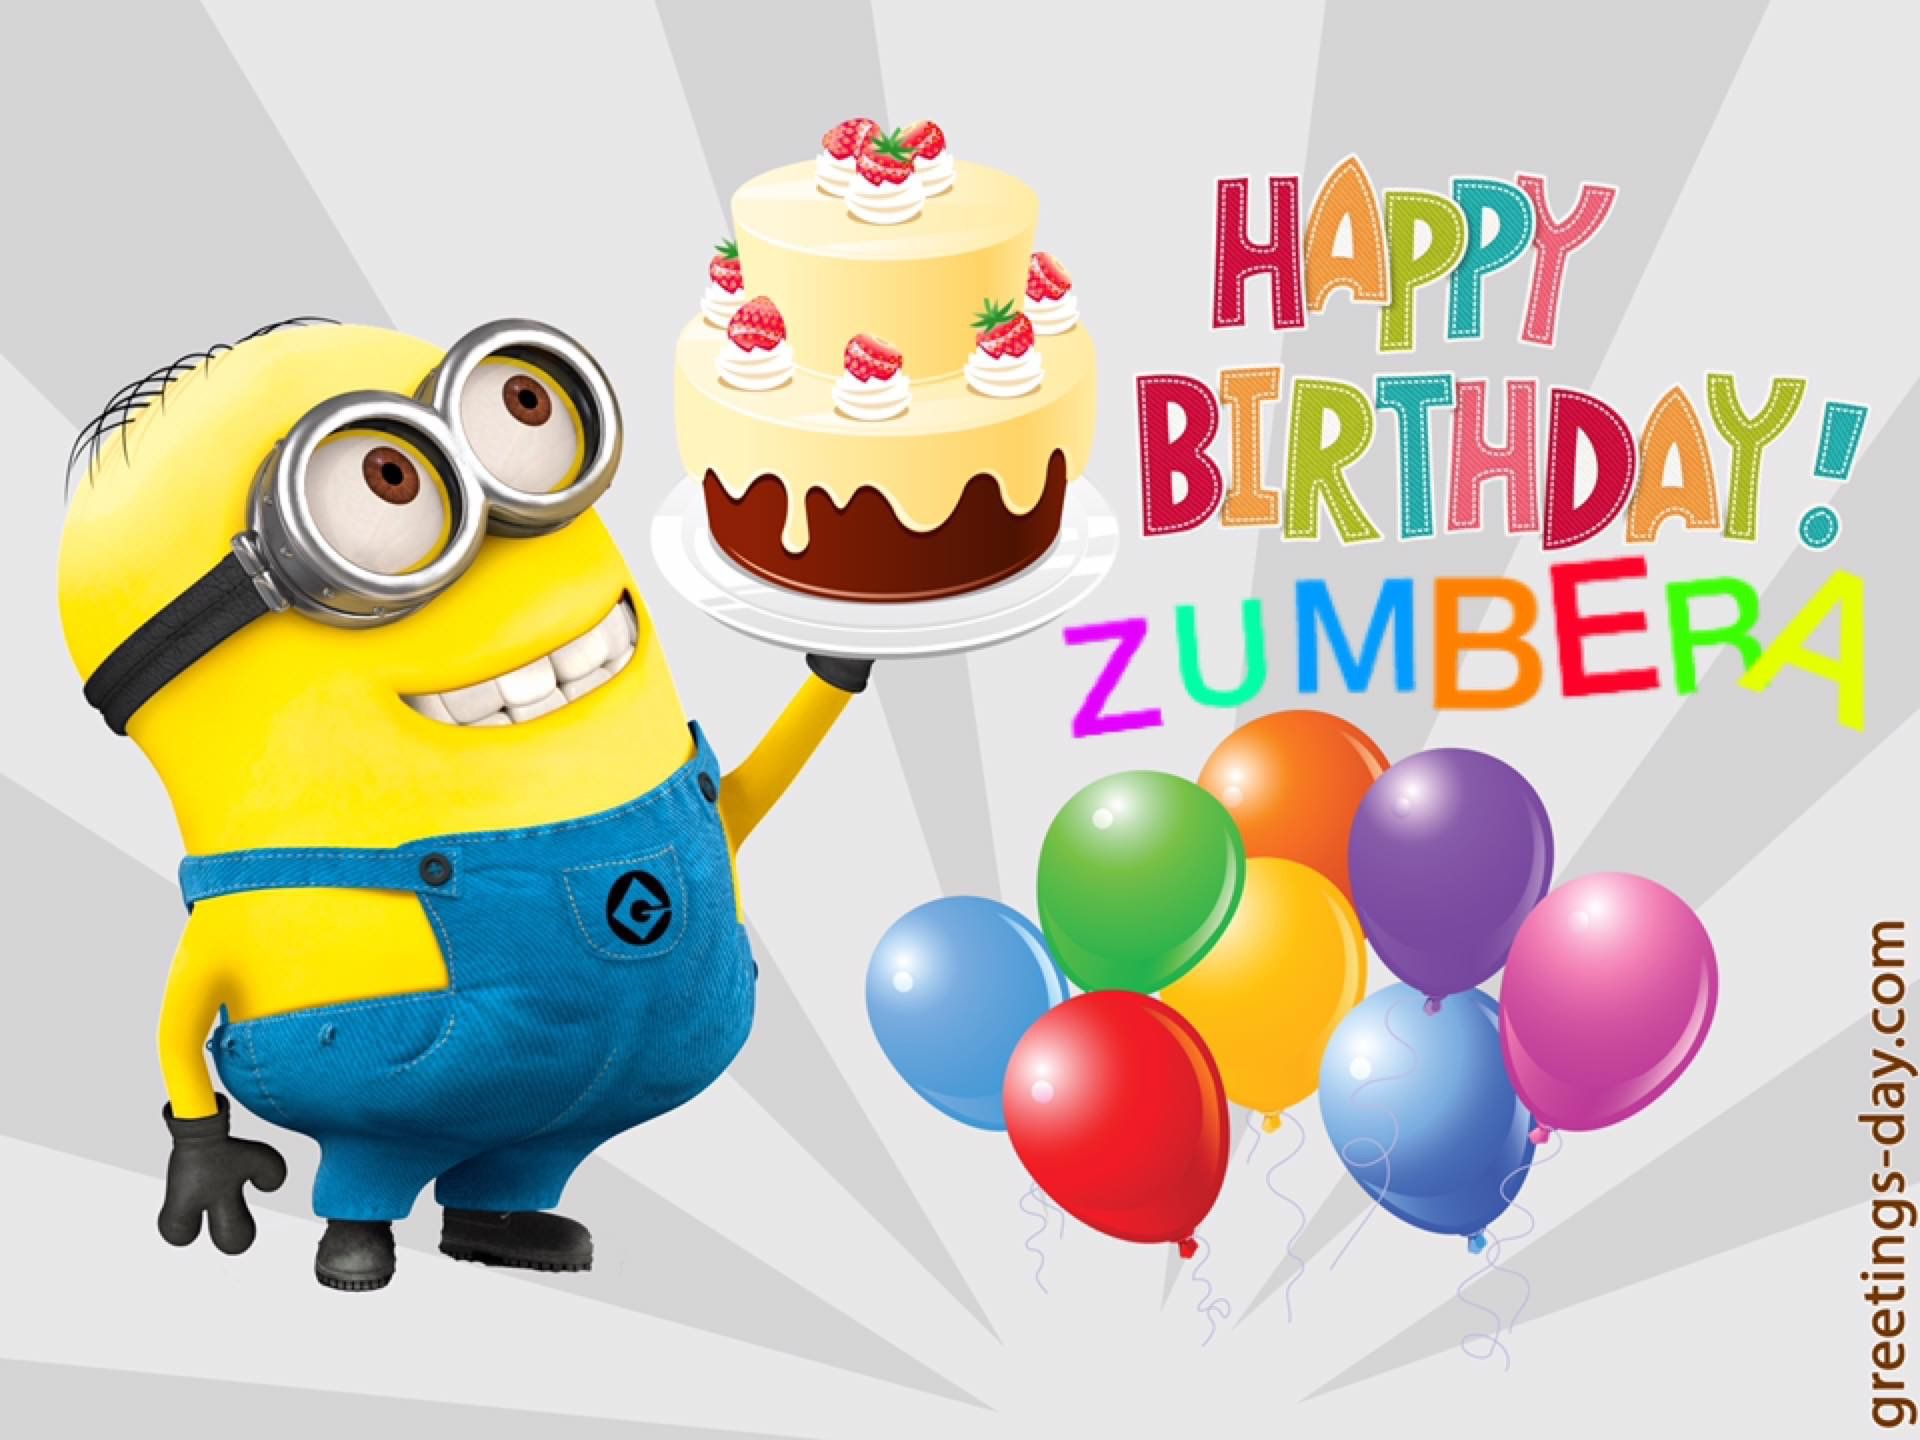 Love sending bday greetings to all my zumberas love sending bday greetings to all my zumberas kristyandbryce Image collections